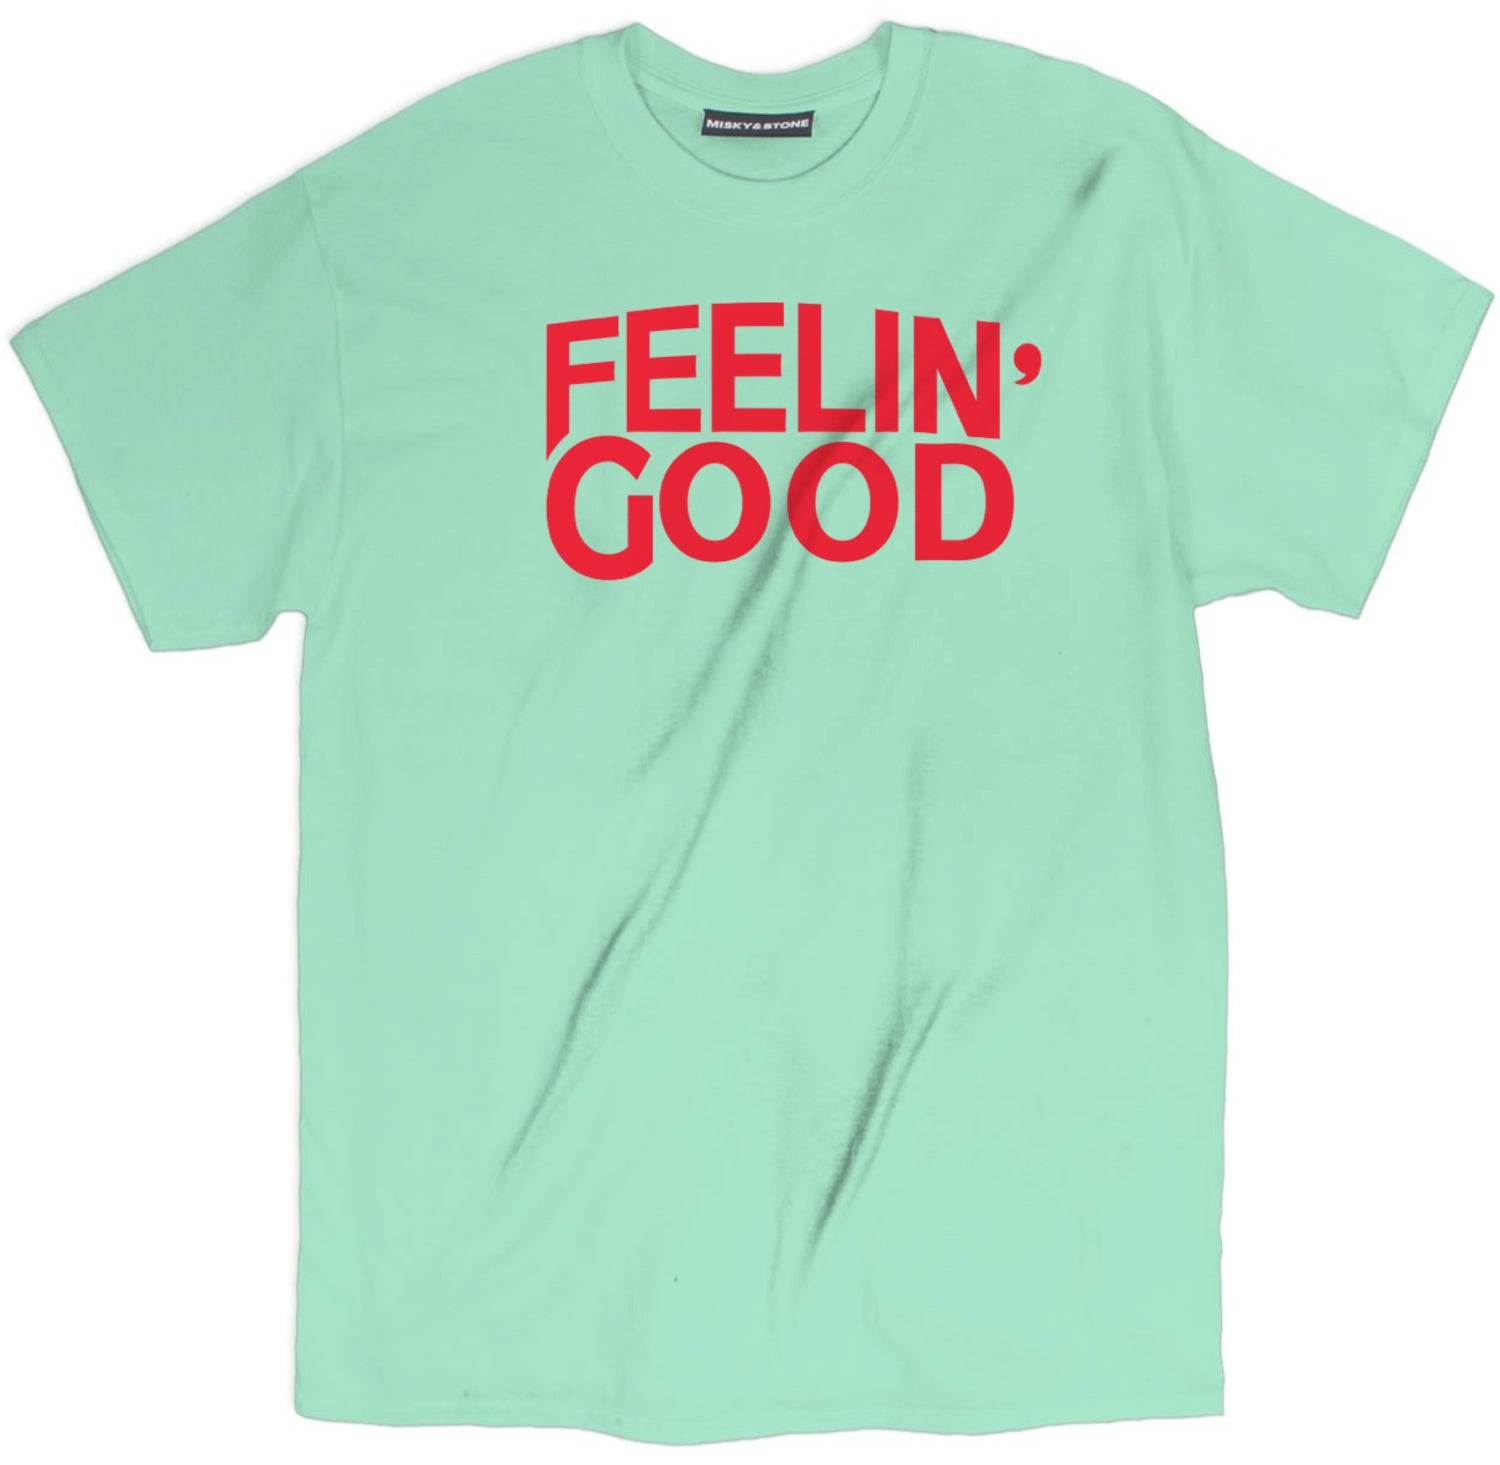 Feeling Good Shirt